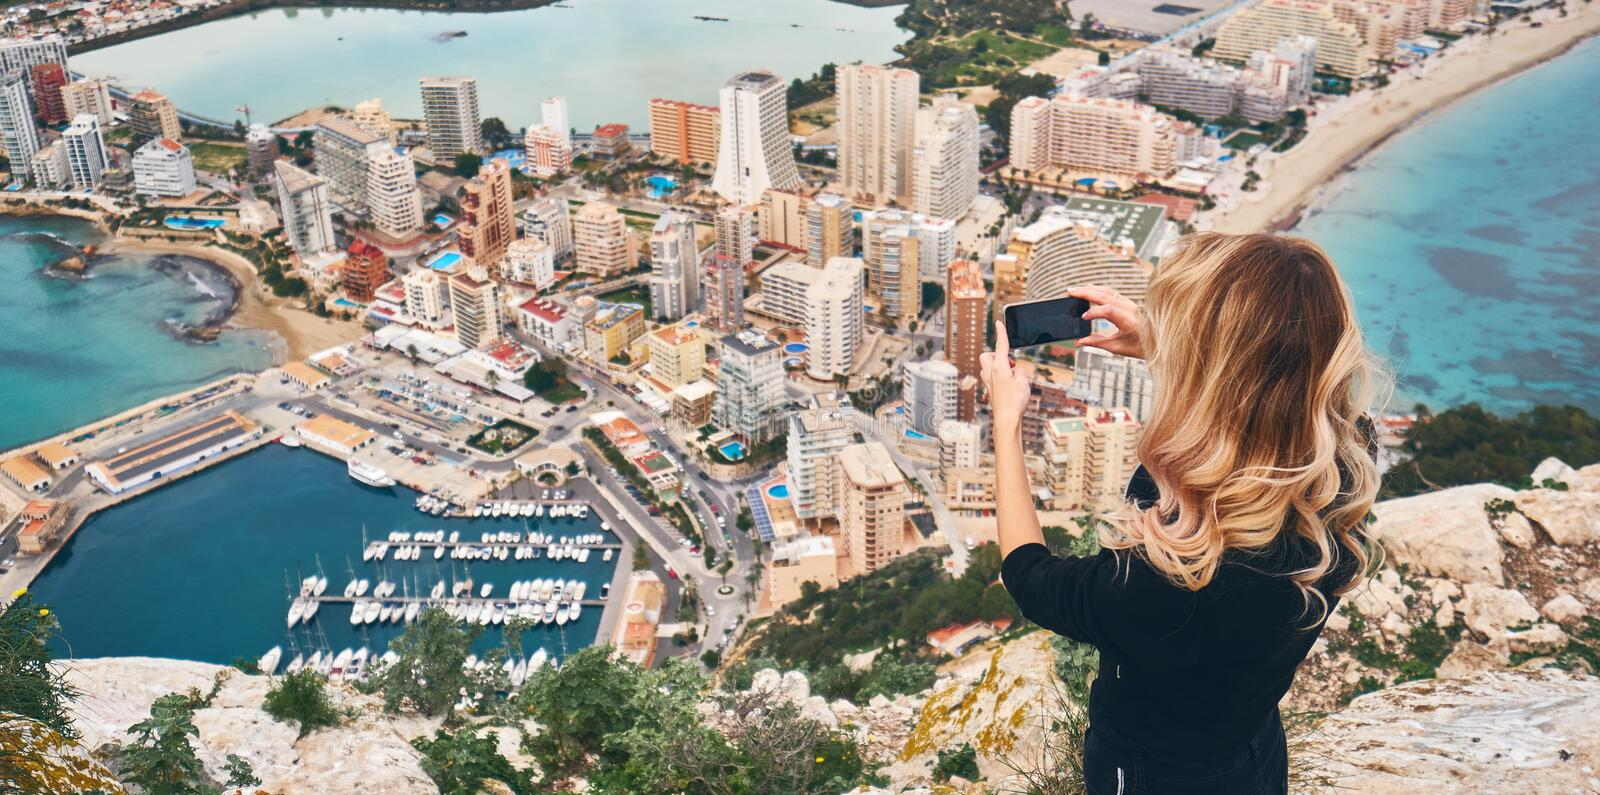 Woman climbed up on Penon de Ifach rock. Enjoy view of city from top, stand on peak of mountain takes photo of cityscape and stock photography